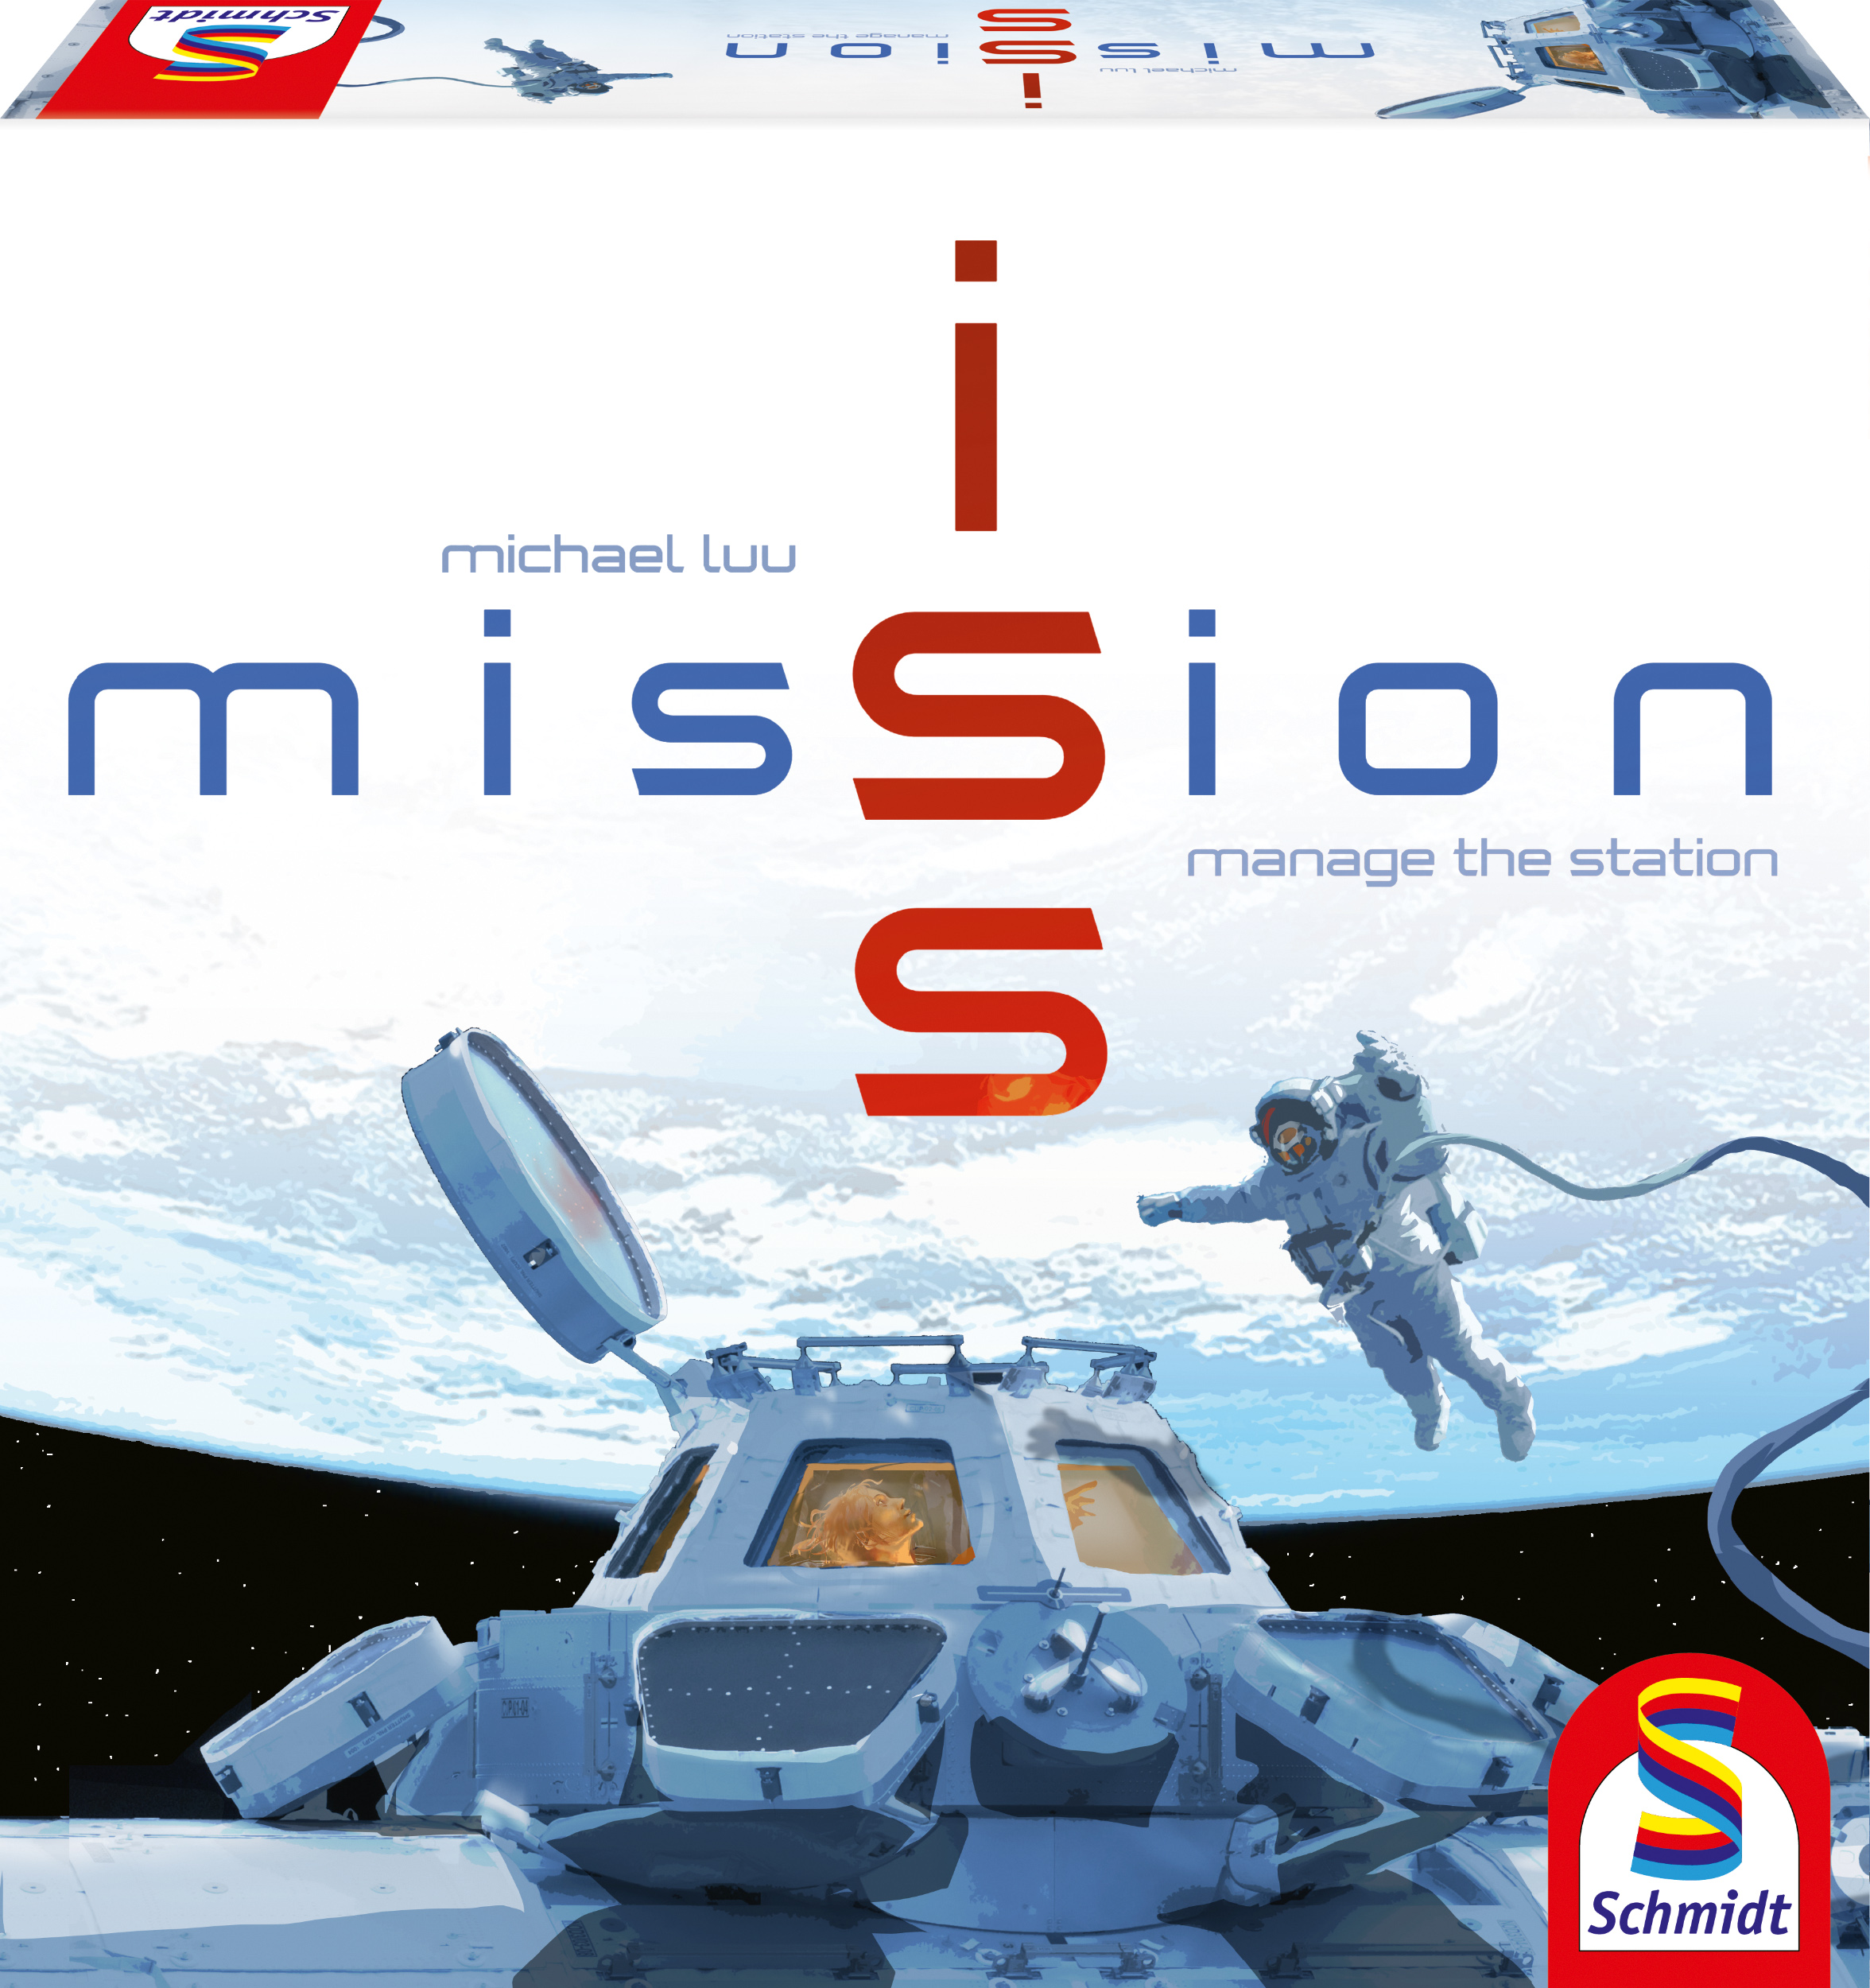 Mission ISS (c)Schmidt Spiele